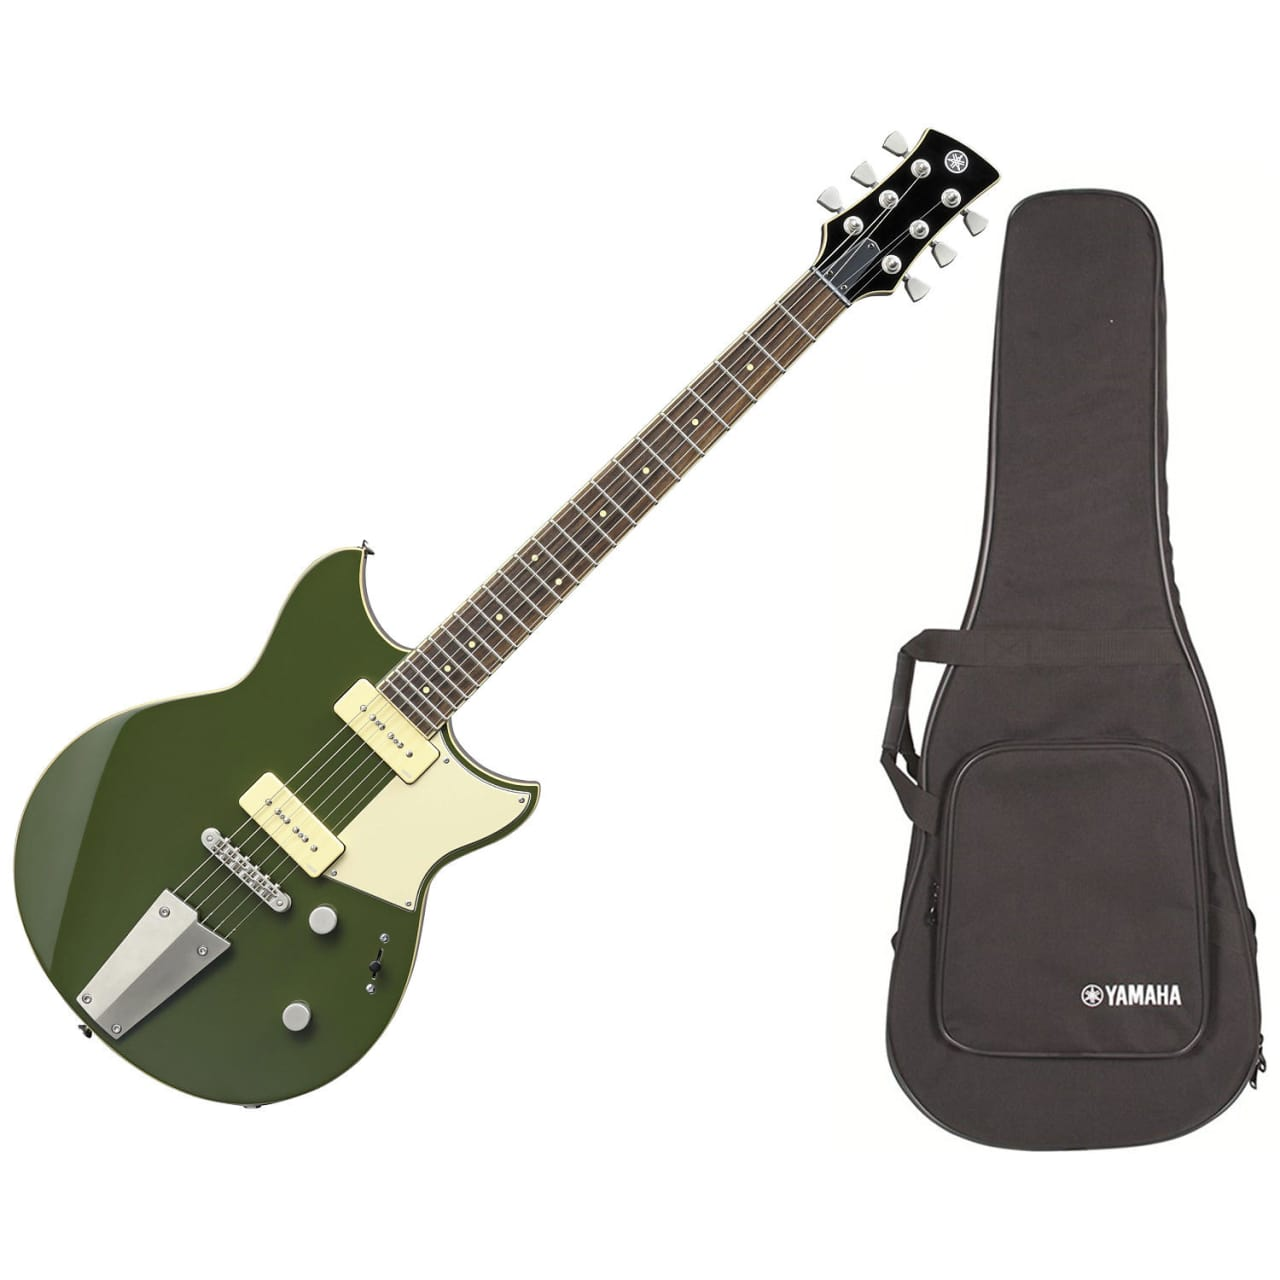 yamaha rs502t revstar electric guitar p 90 w gig bag bowden reverb. Black Bedroom Furniture Sets. Home Design Ideas